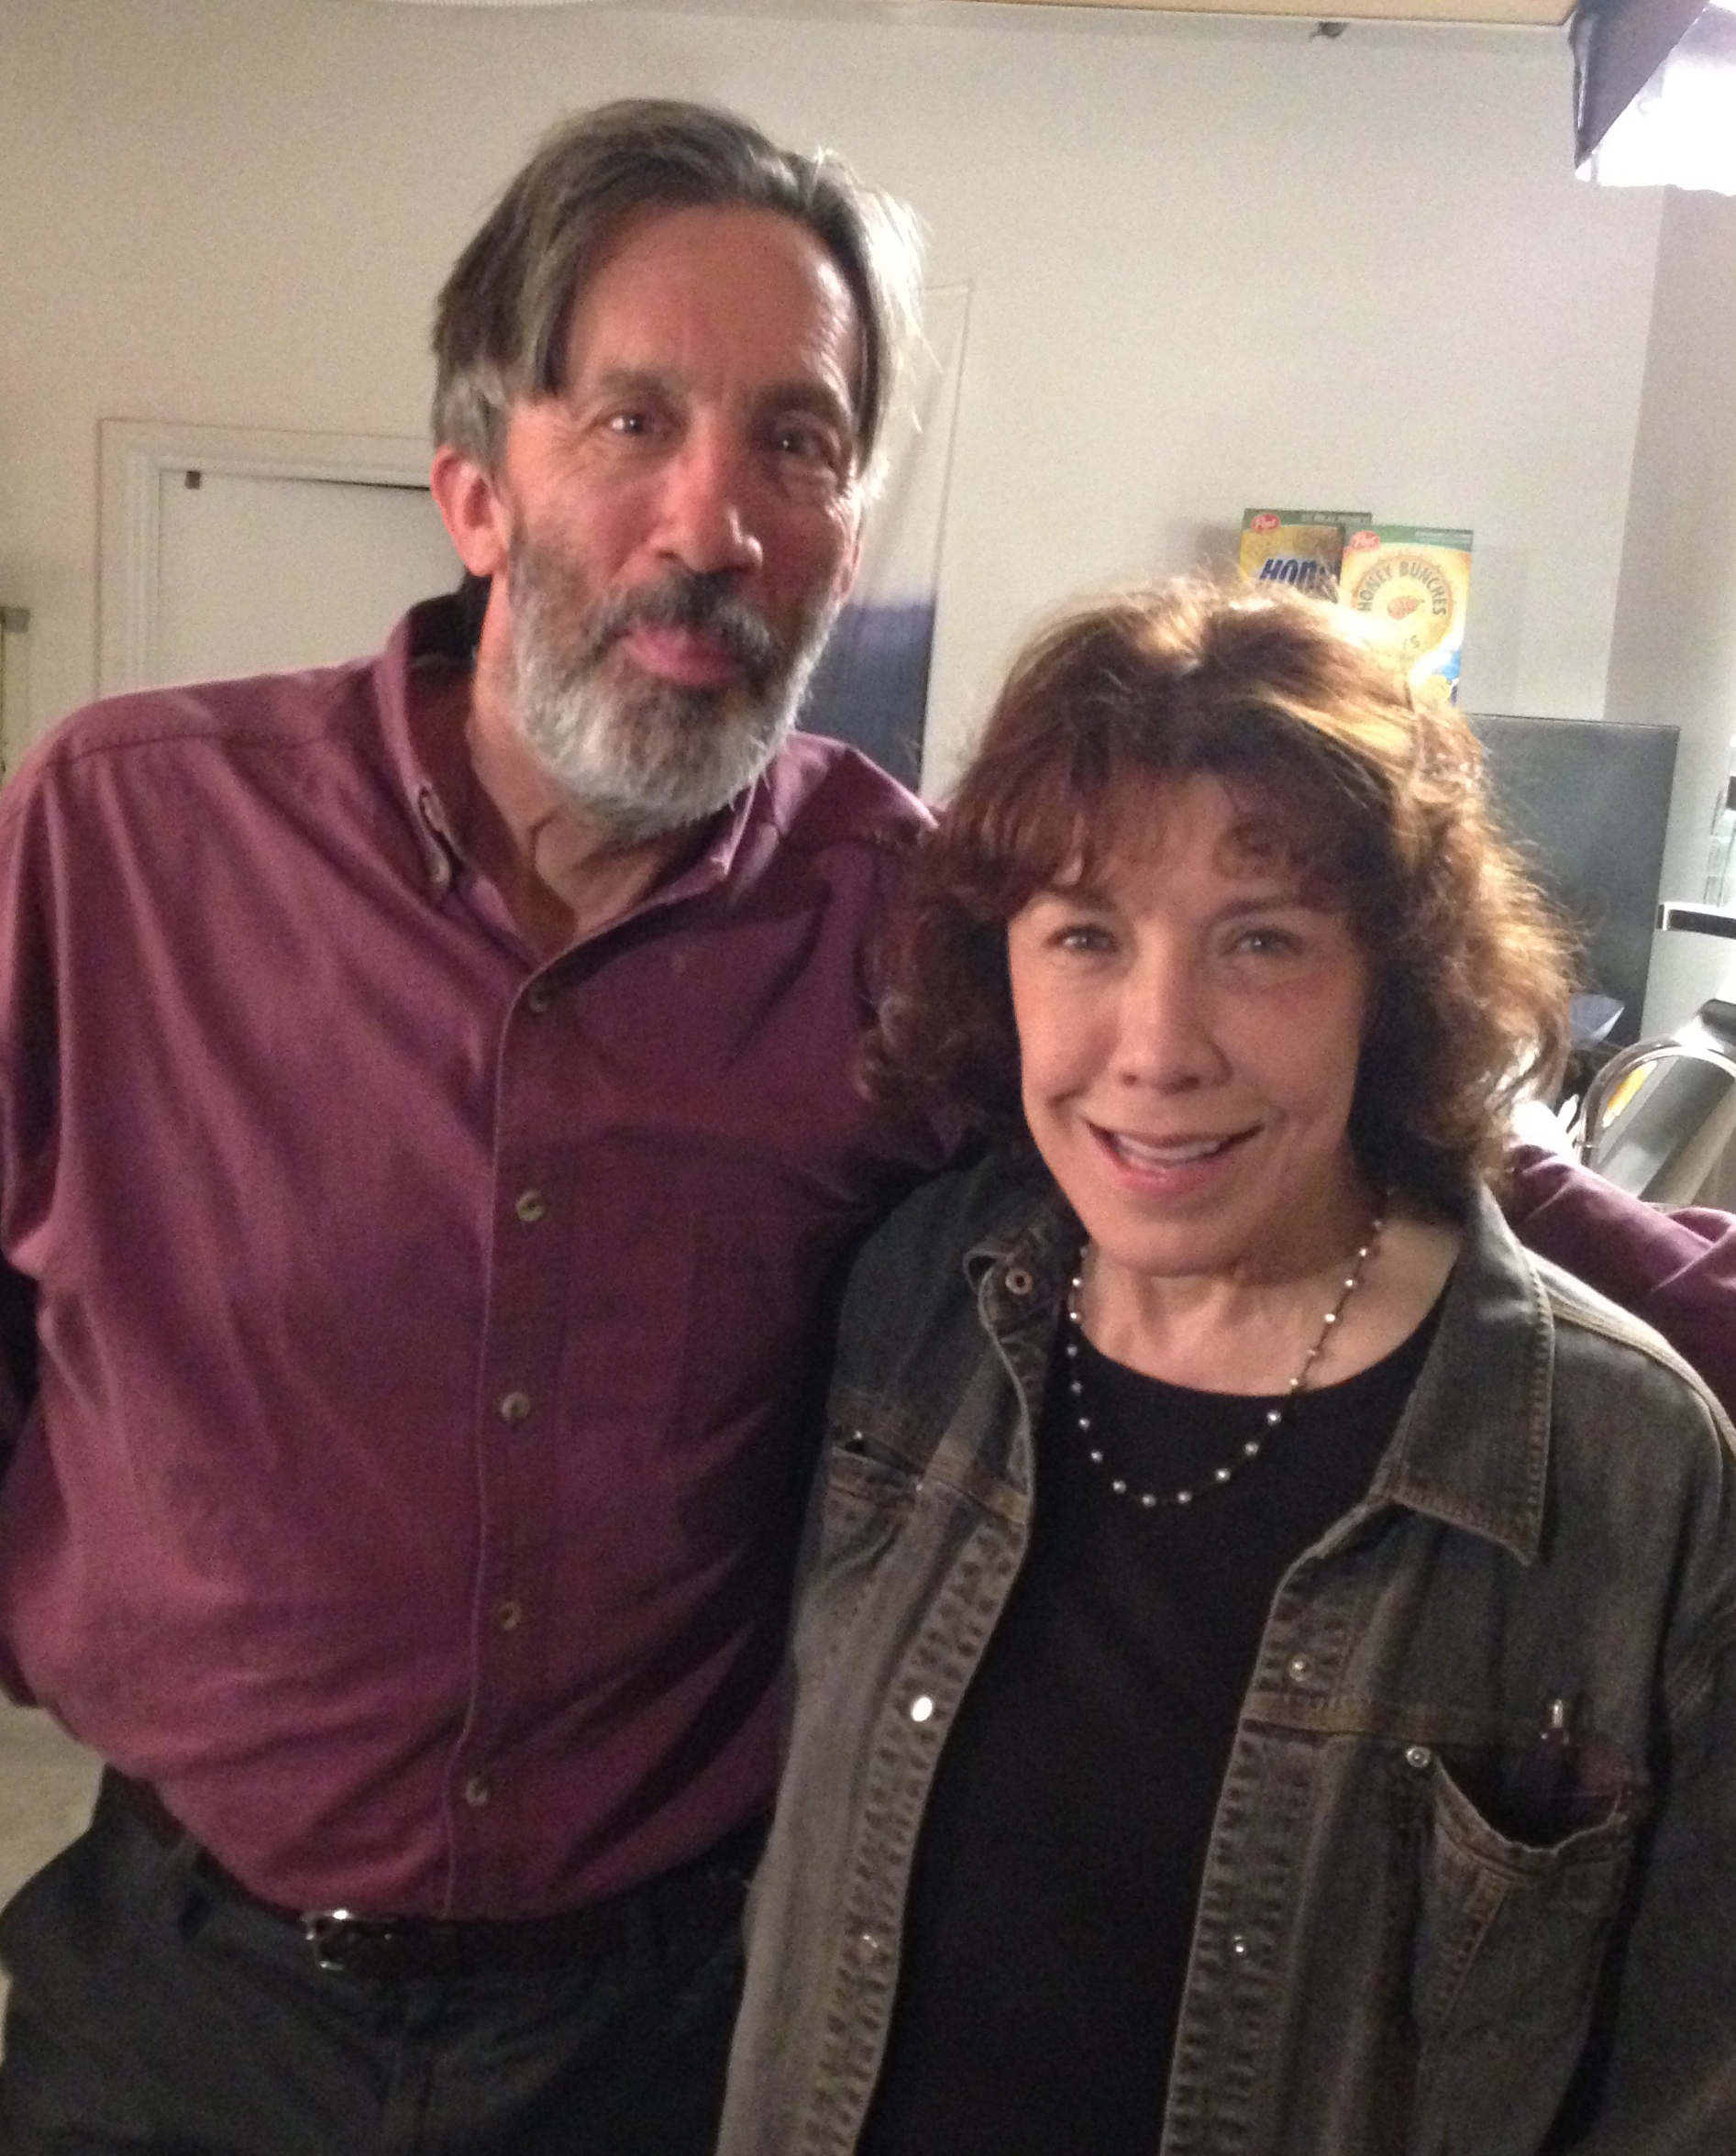 Frank appearing in Gramma with Lilly Tomlin